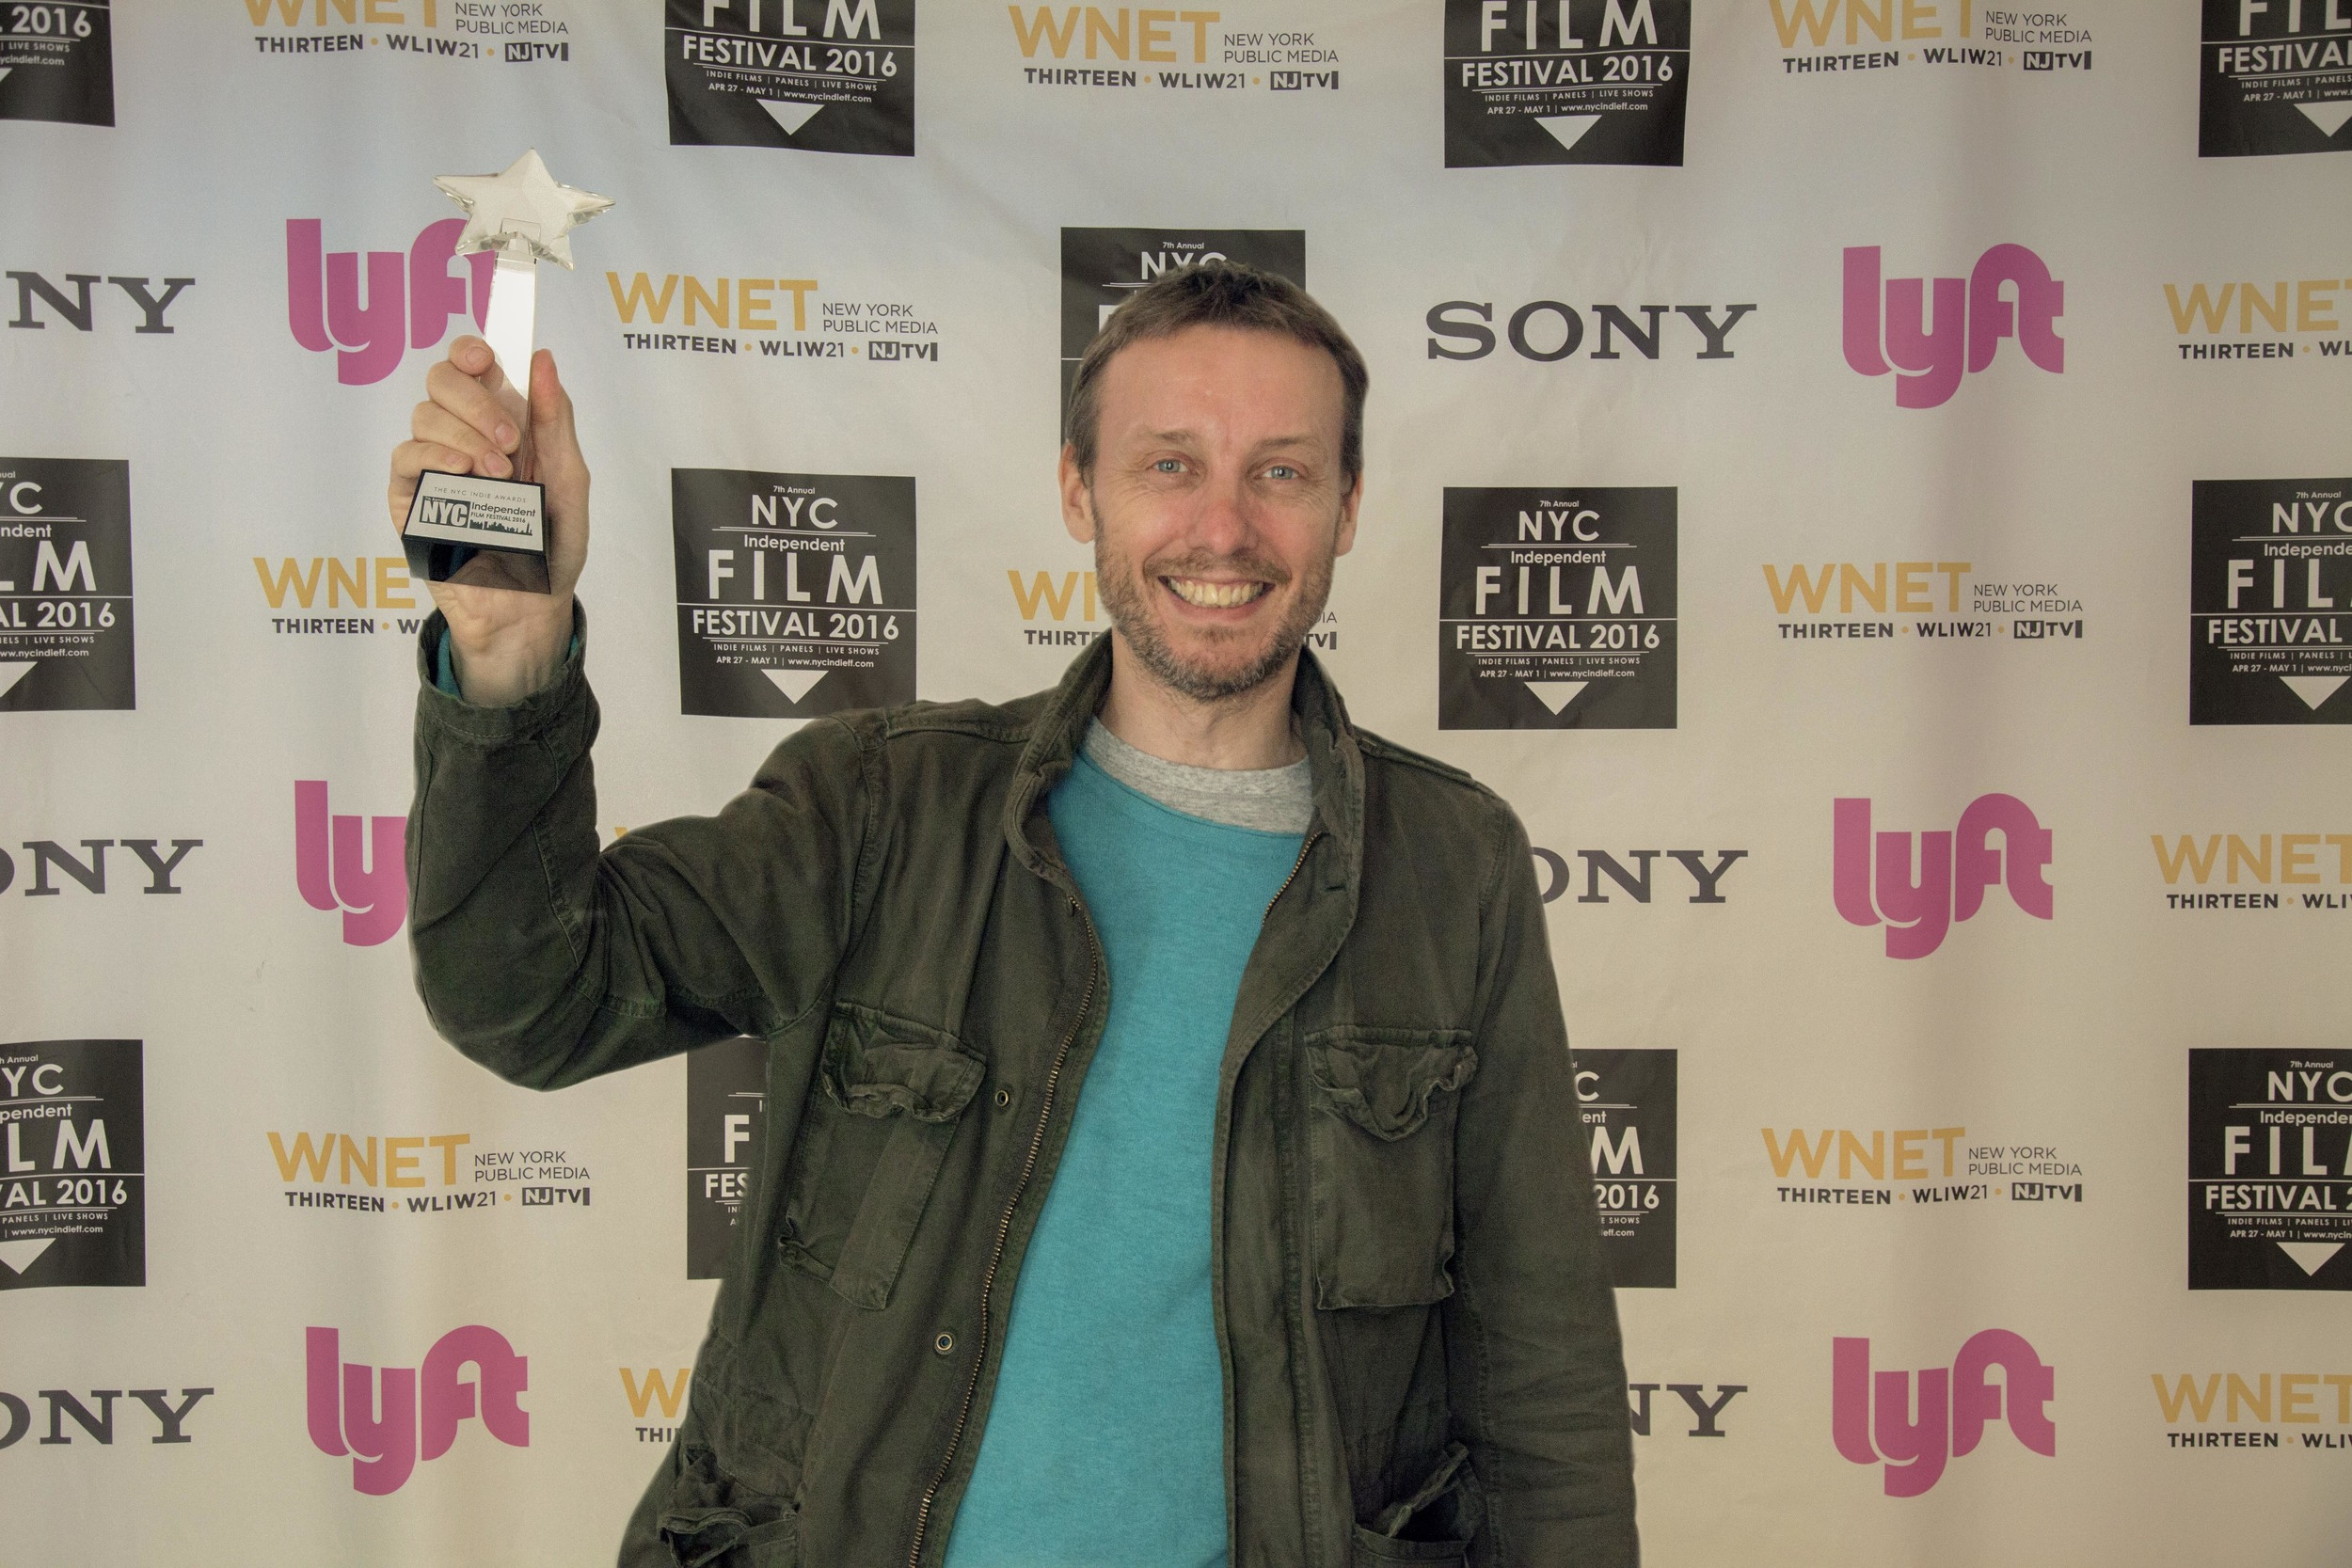 MILE END director Graham Higgins at the NYC Independent Film Festival 2016, with the prize for Best Narrative Feature.